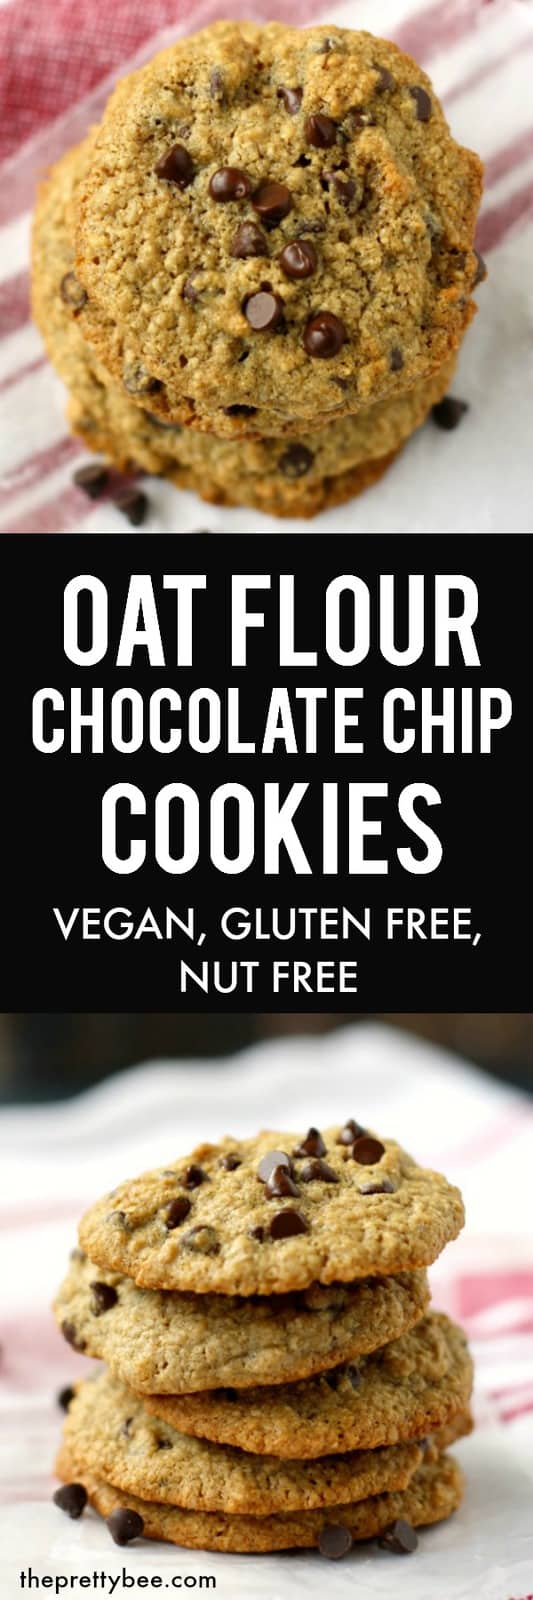 These gluten free oat flour cookies are easy to make, and so delicious! #dairyfree #glutenfree #vegan #nutfree